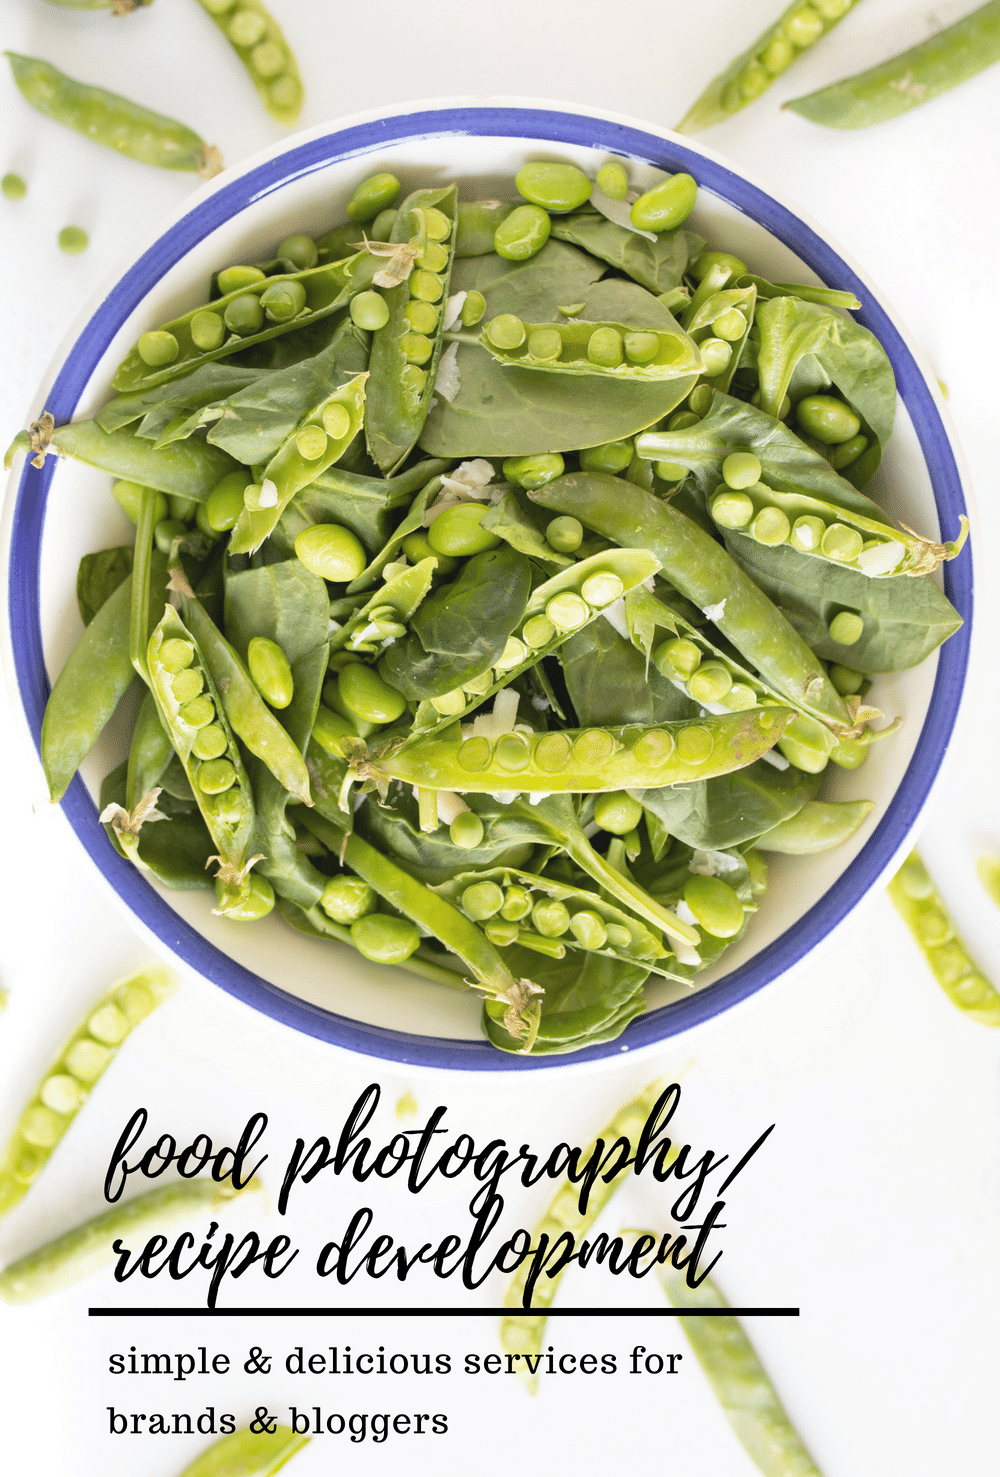 Nourish Nutrition Co: Food Photography and Recipe Development: simple and delicious services for bloggers & brands